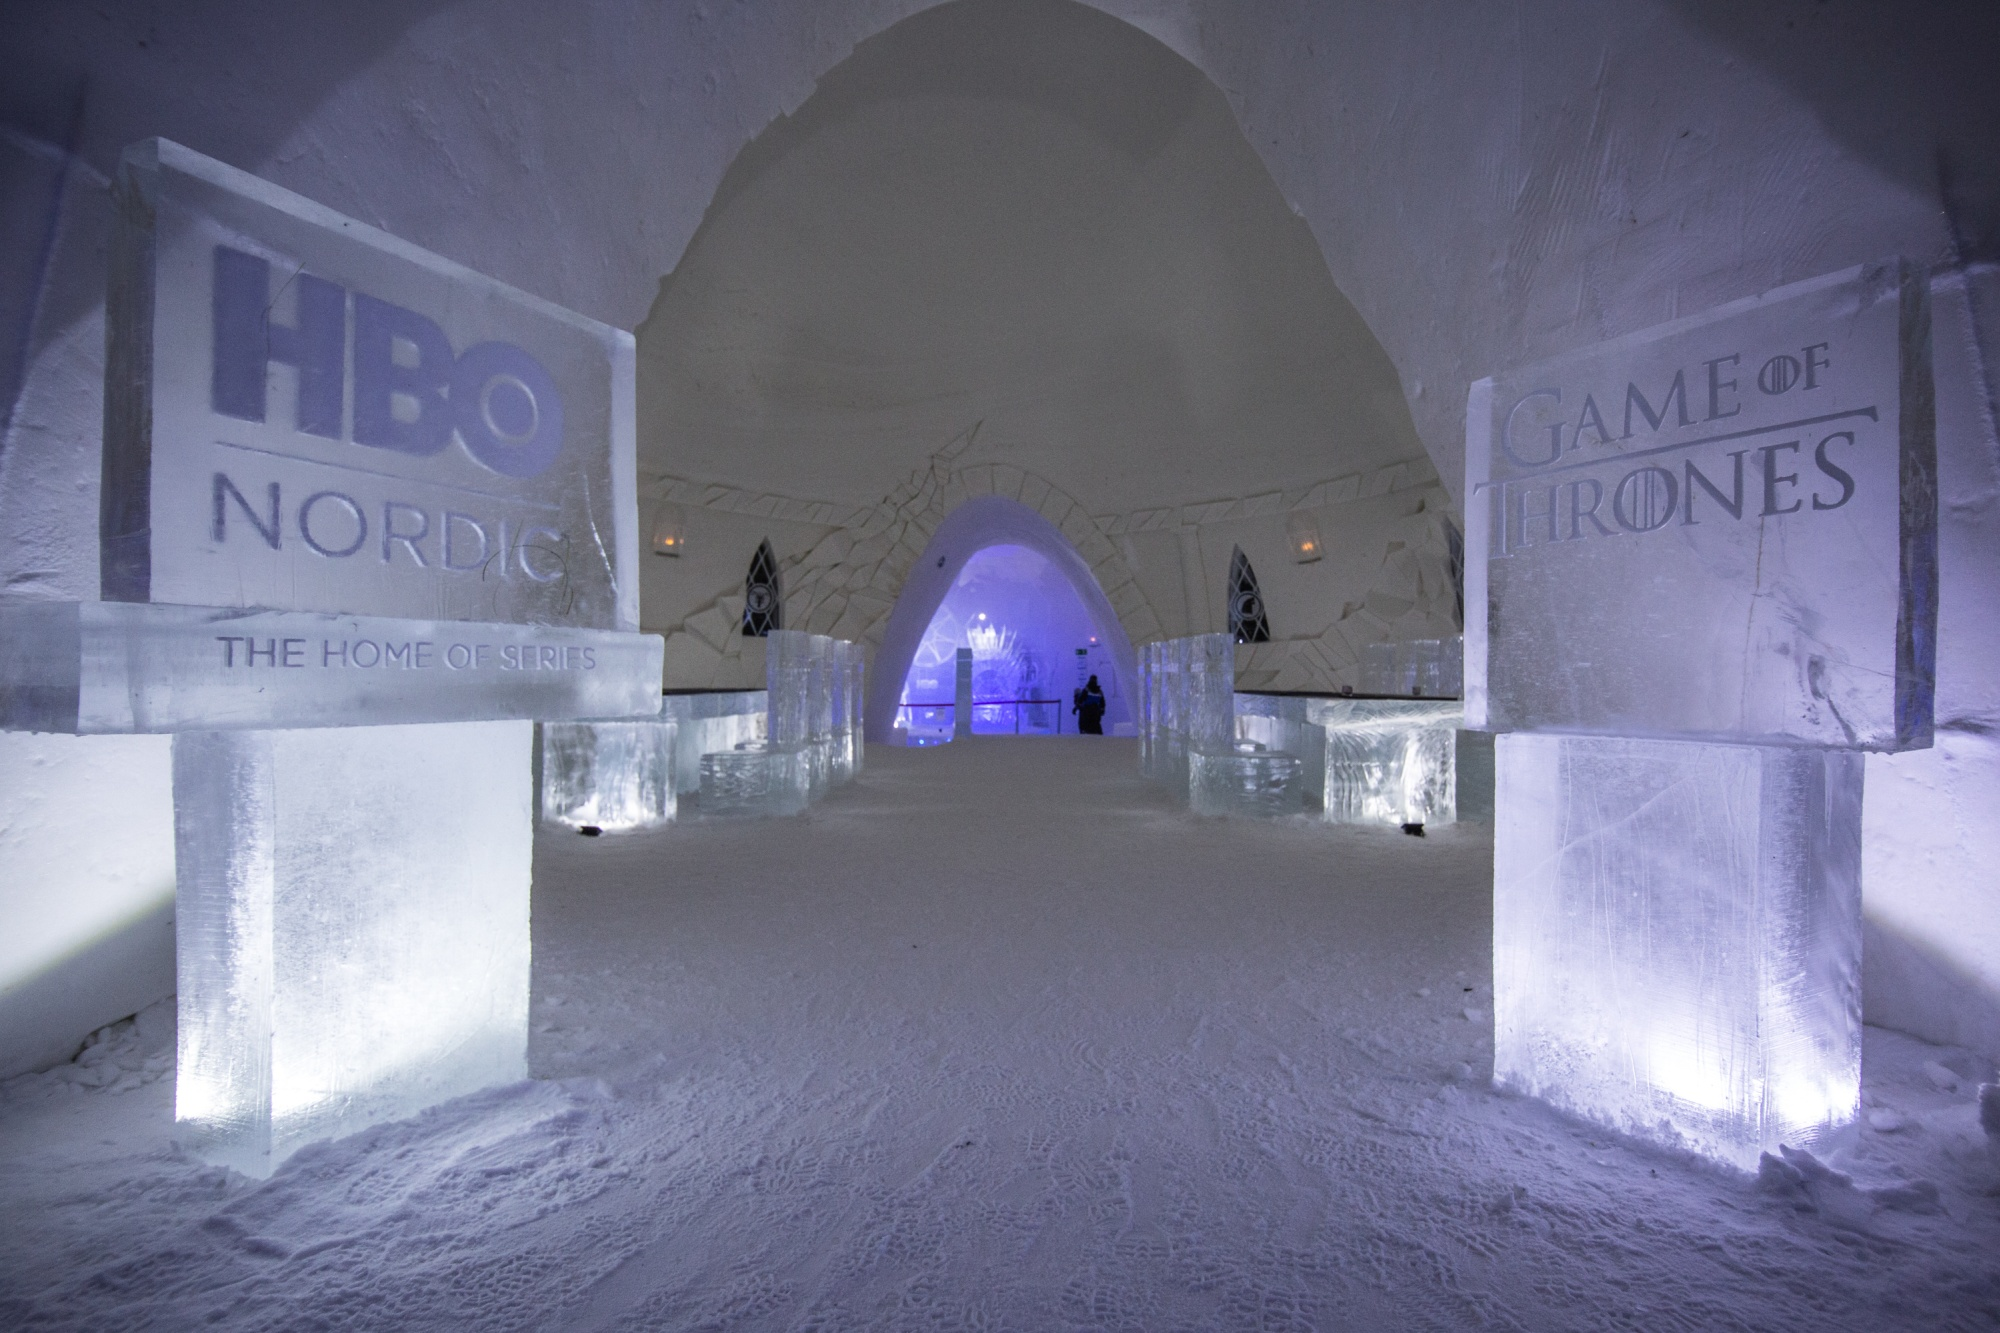 Lapland Hotels Snowvillage Ice Hotel With Game Of